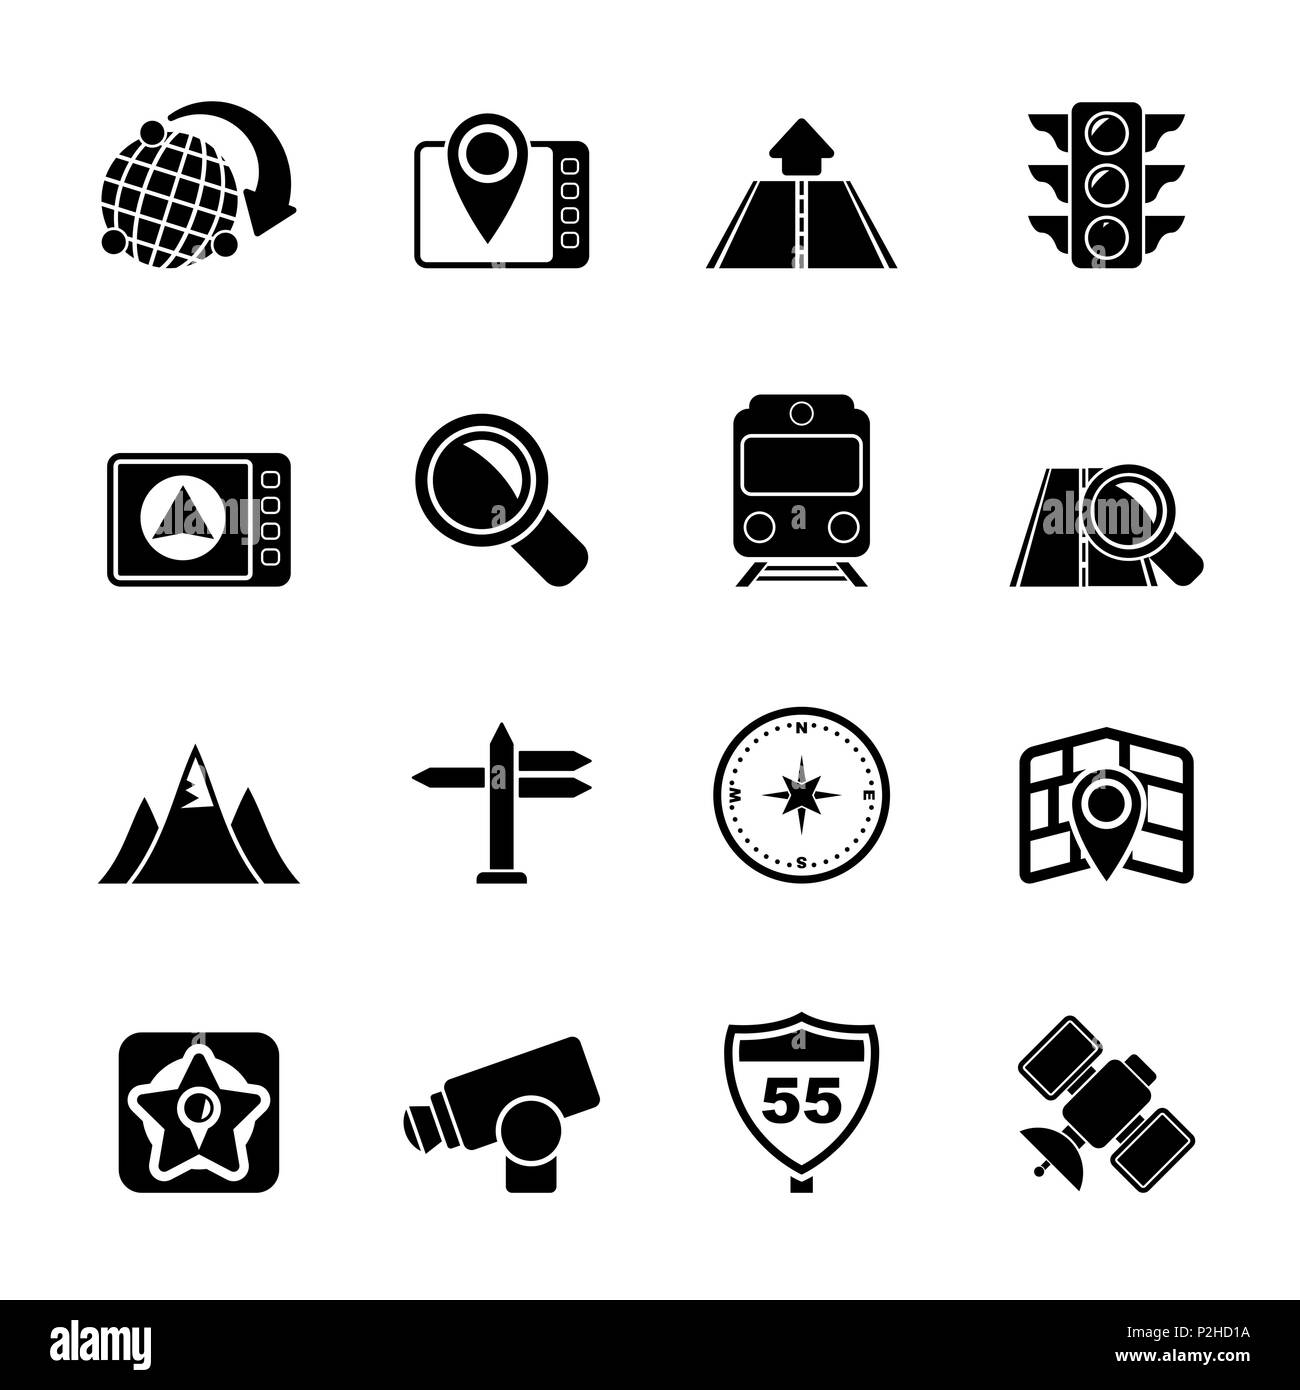 Silhouette Map, navigation and Location Icons -vector icon set - Stock Image